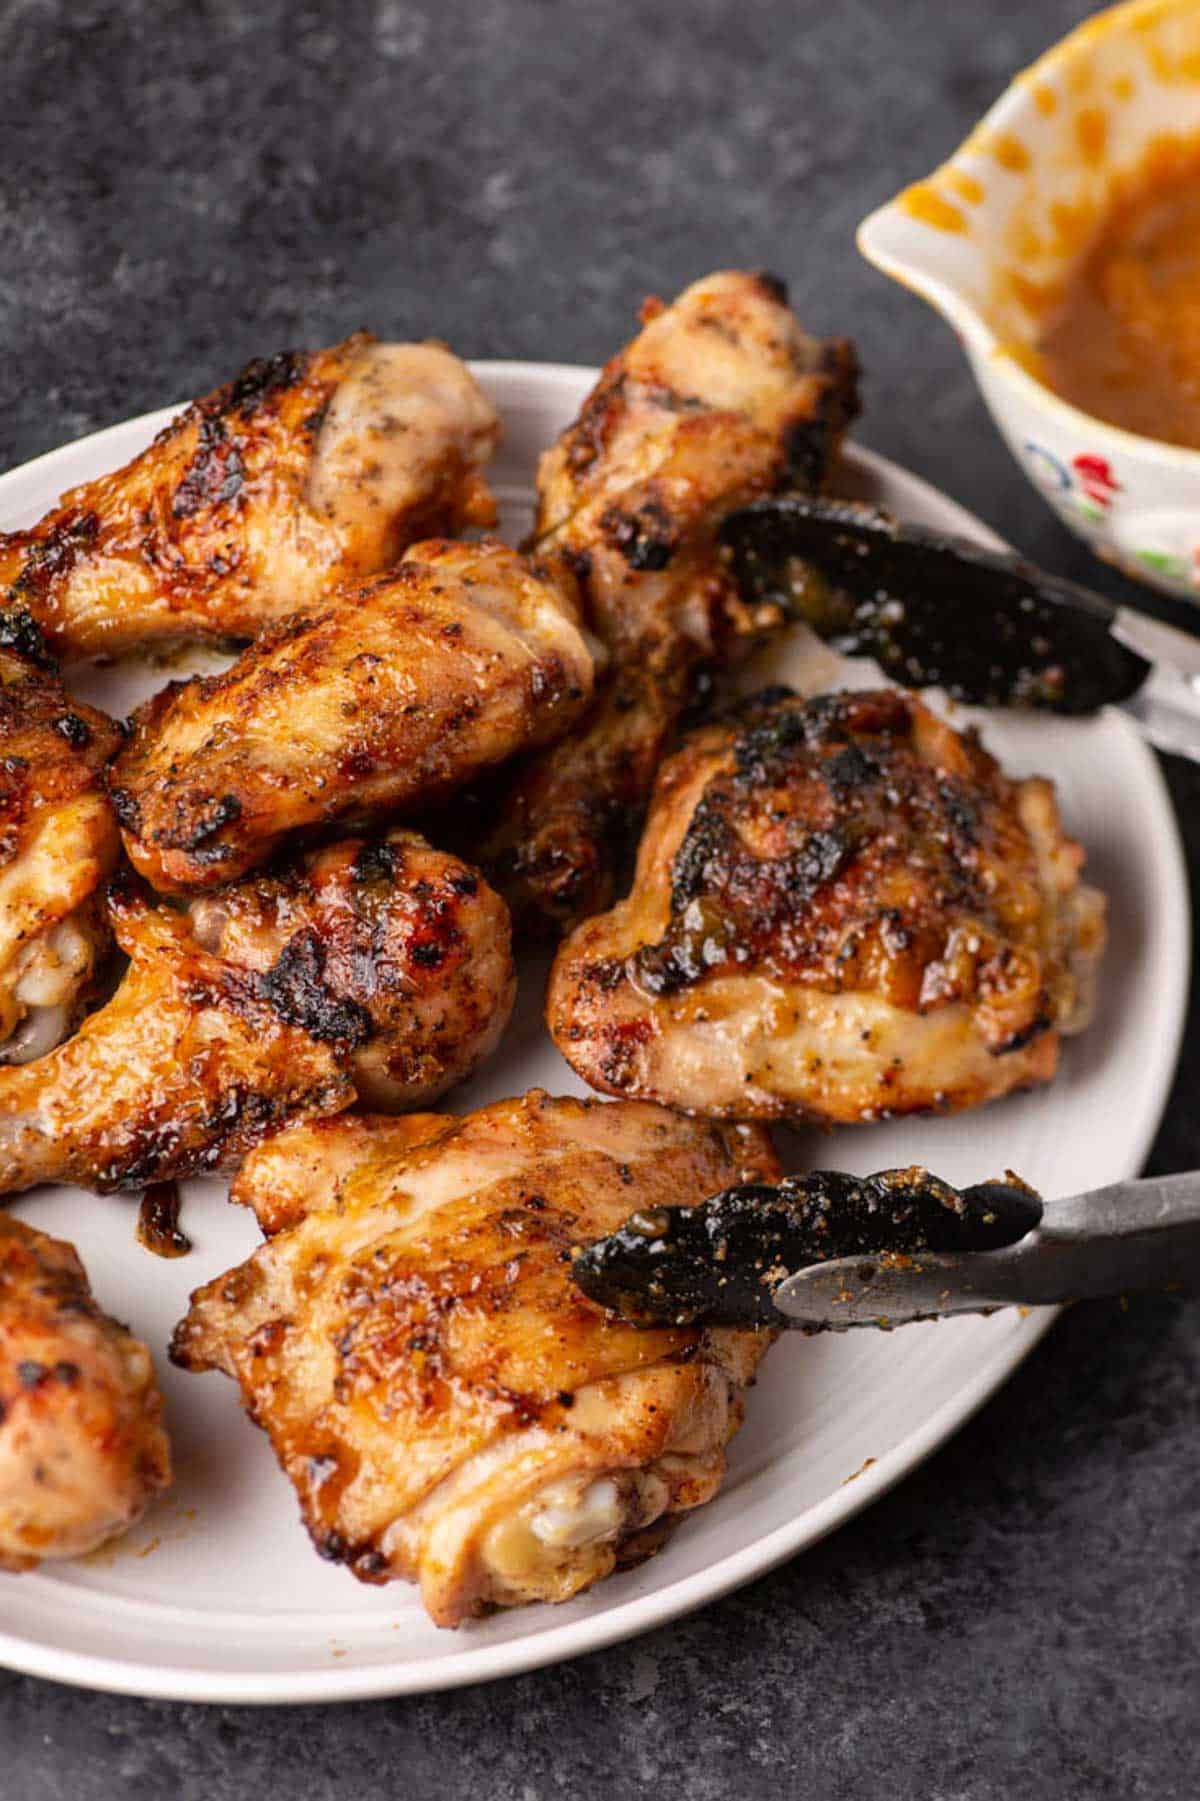 A white platter full of grilled chicken drumsticks and thighs.